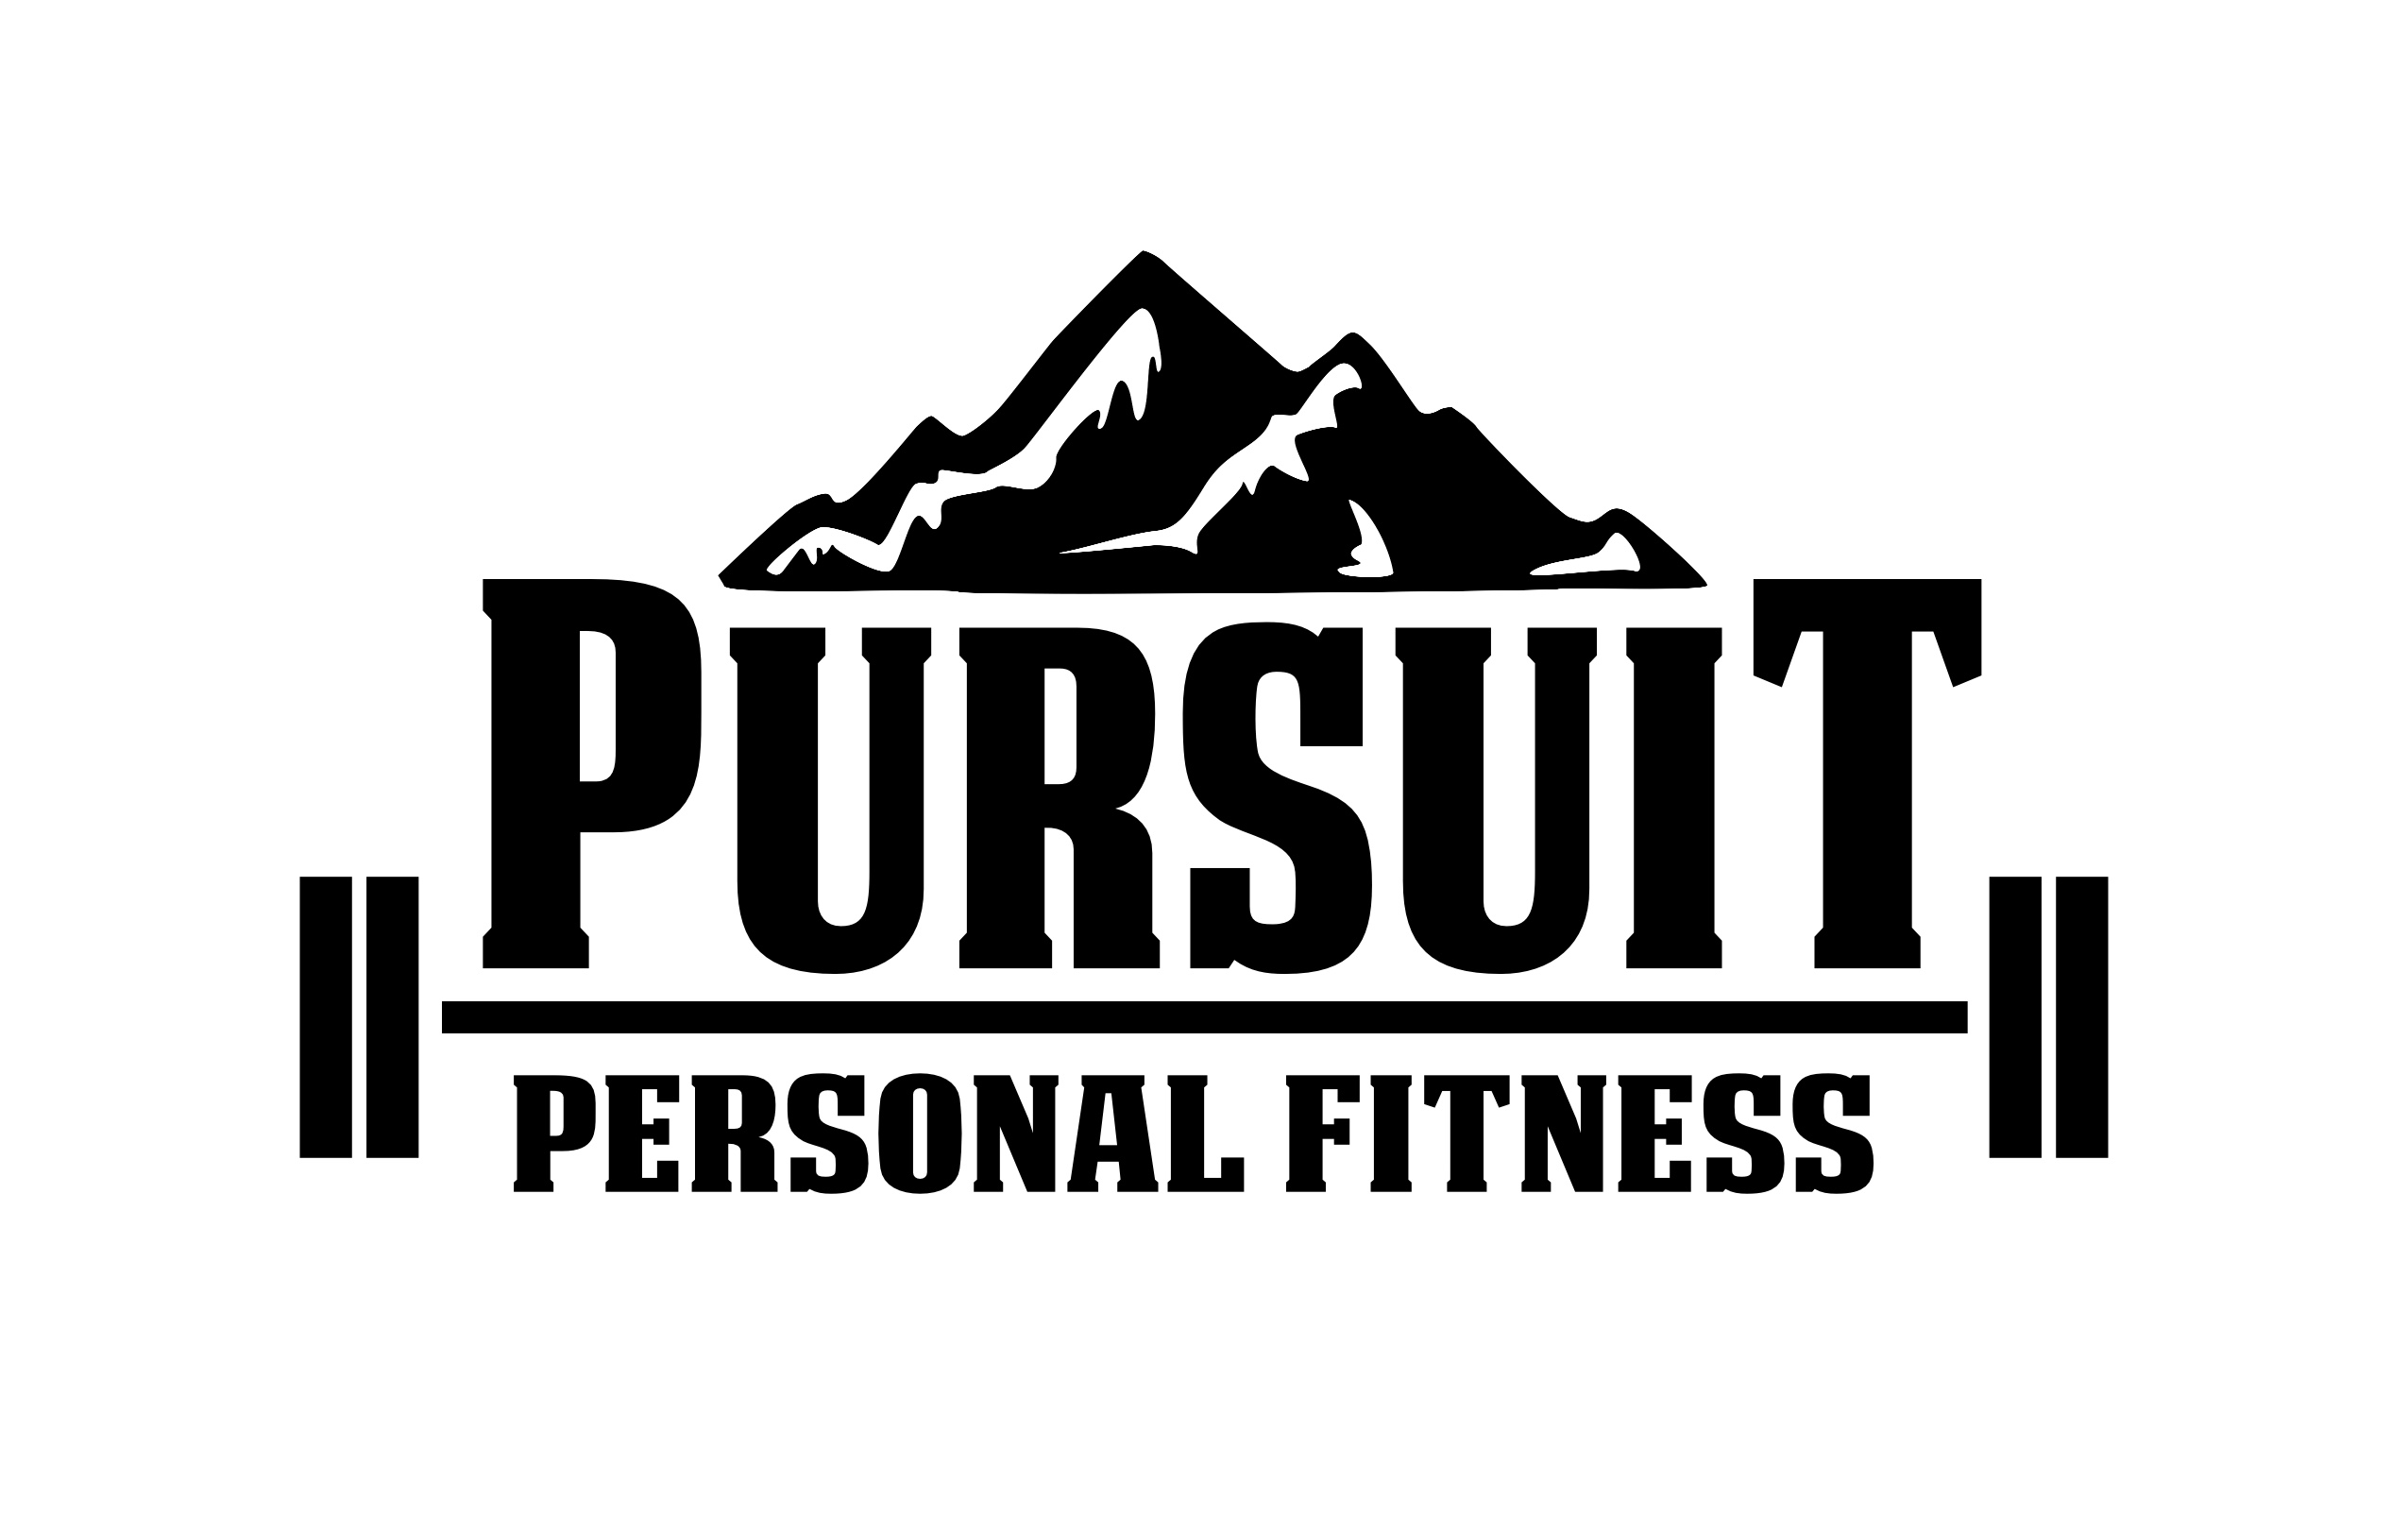 Pursuit Personal Fitness By Anna Reed